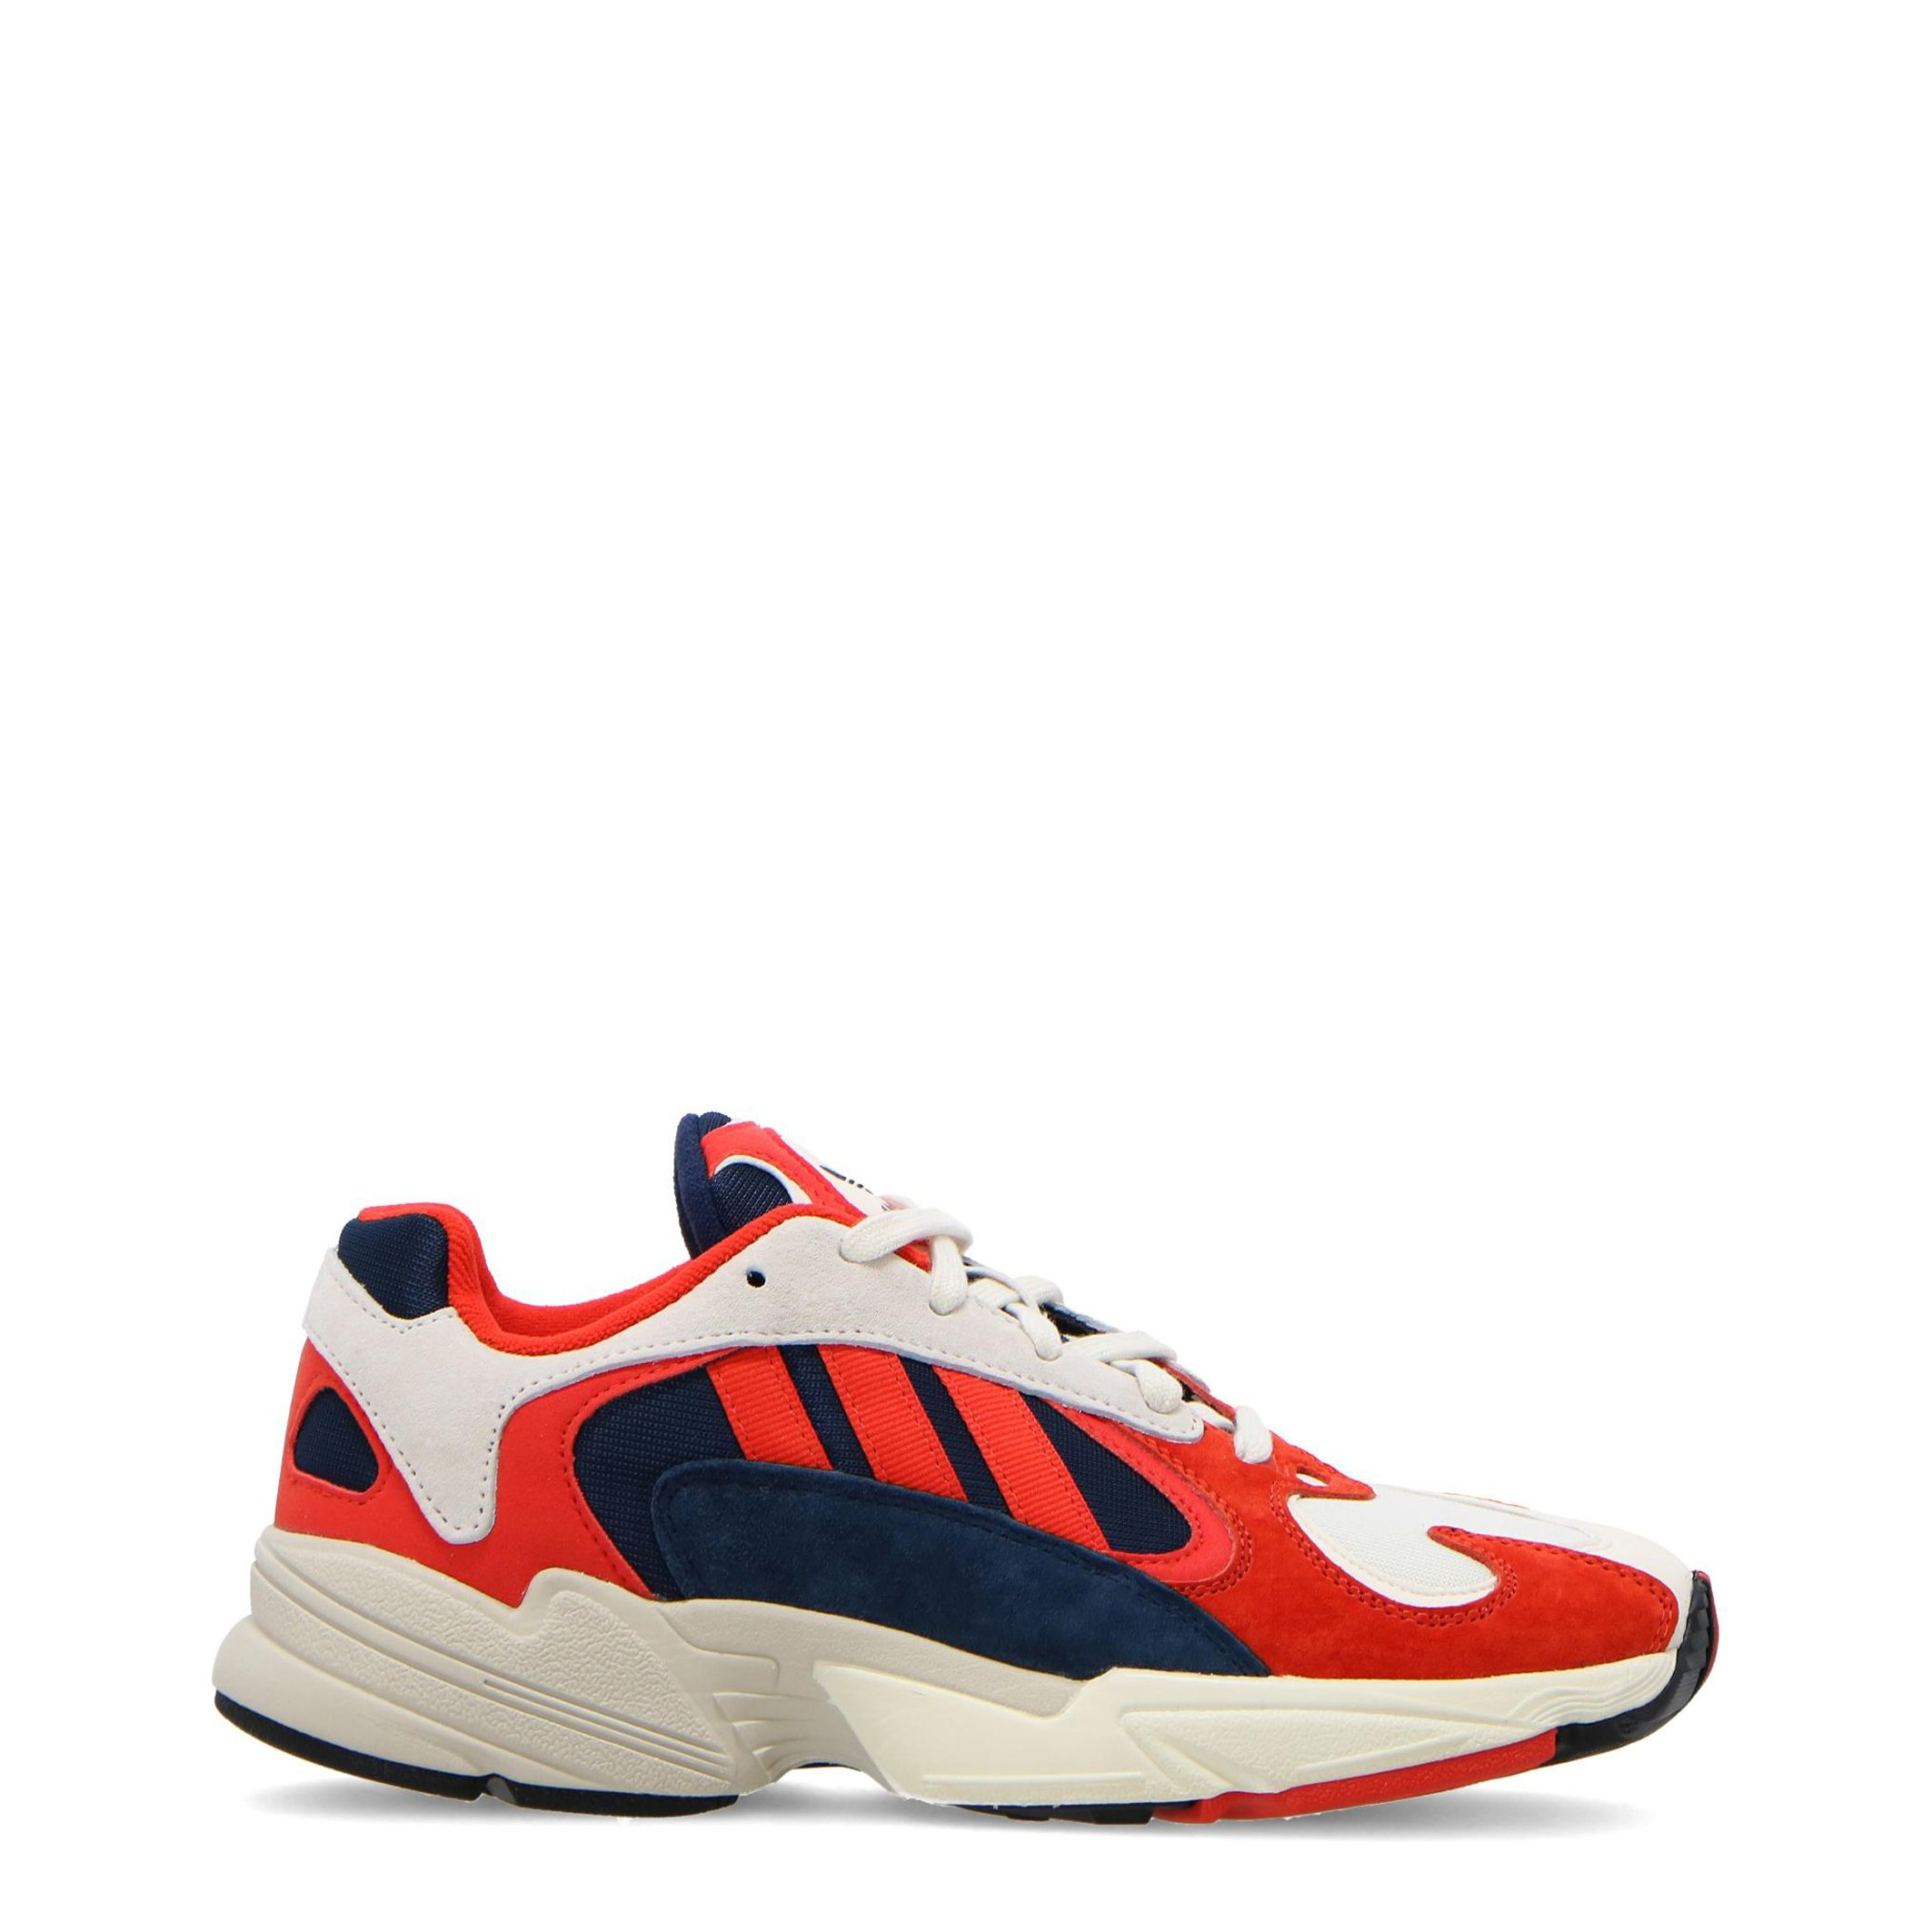 Adidas Unisex Trainers Various Colours BD7654 - red 8.5 UK